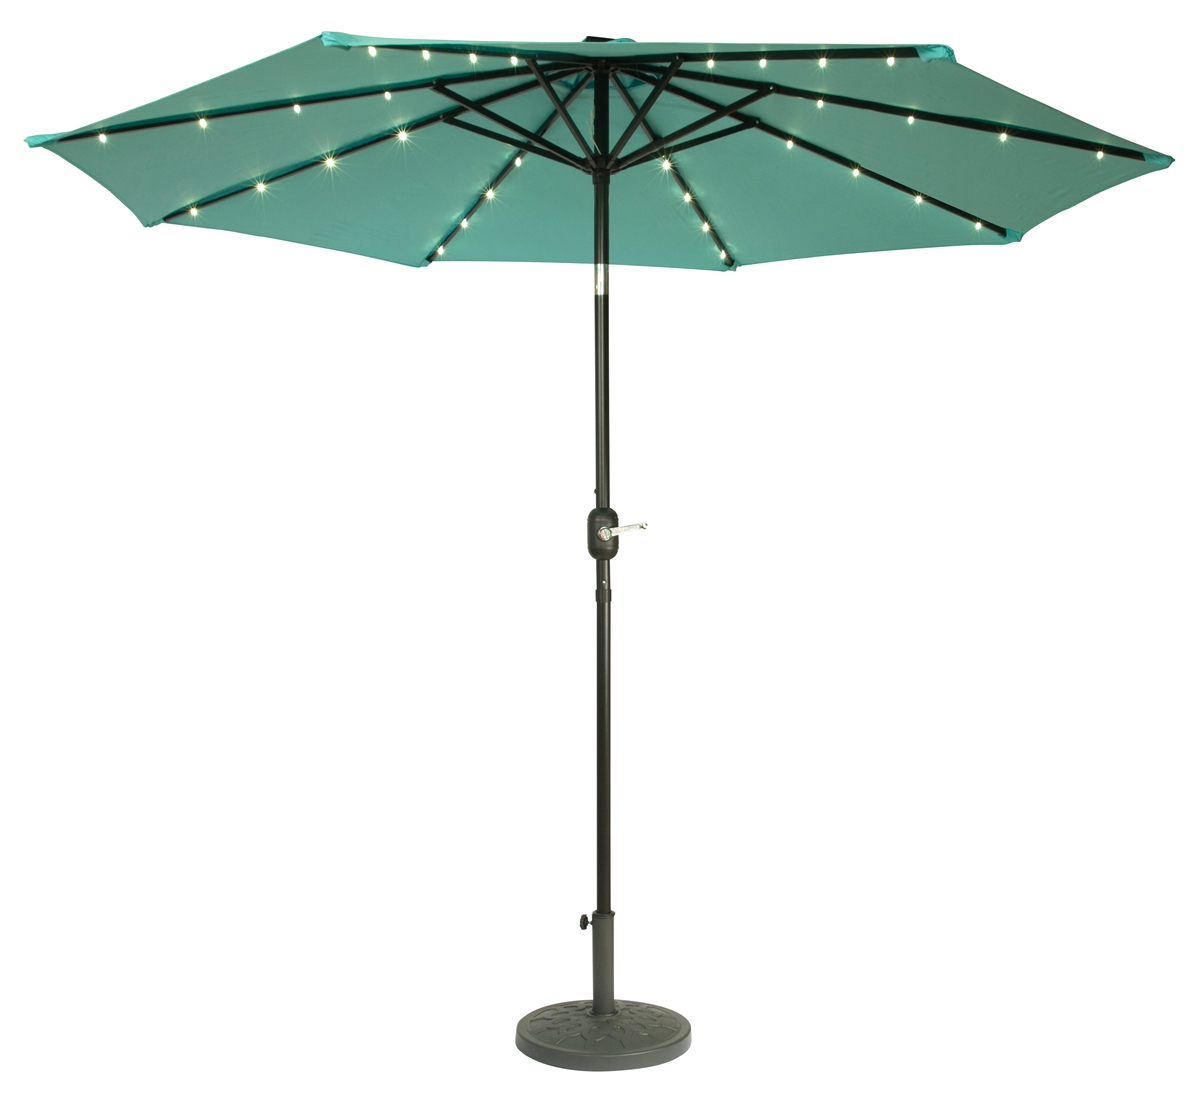 9 deluxe solar powered led lighted patio umbrella by trademark innovations teal